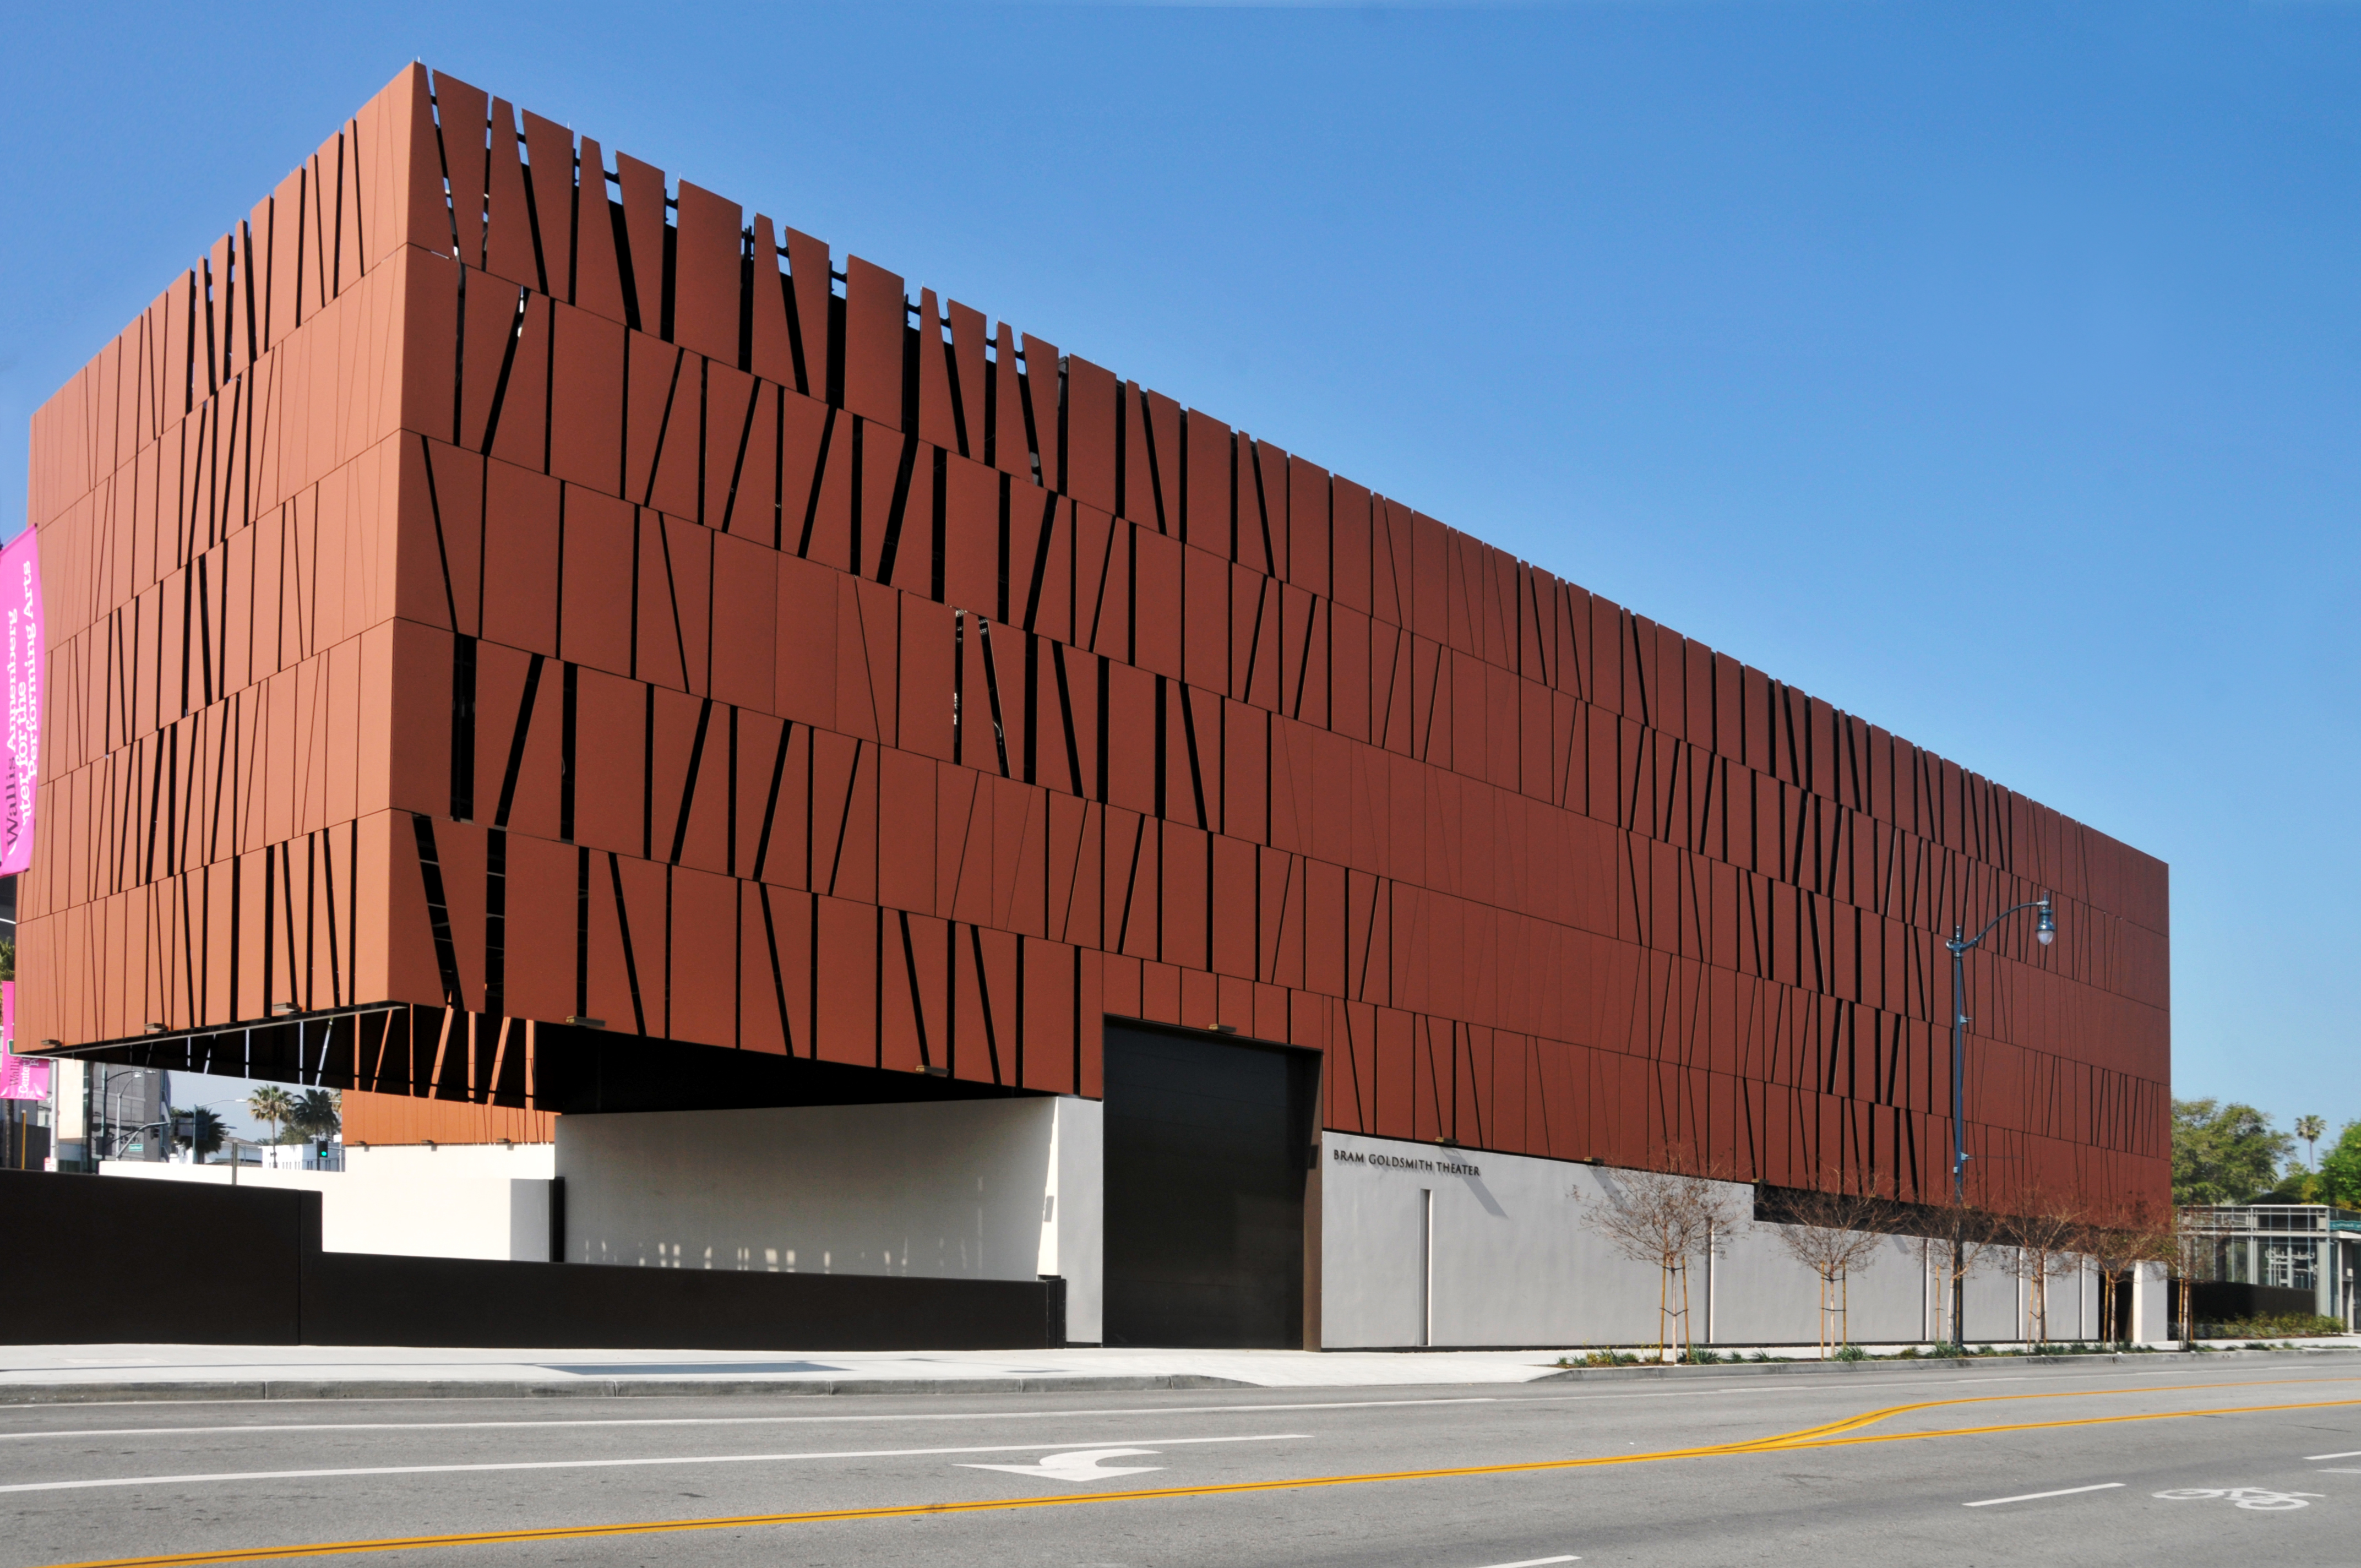 Wallis_Annenberg_Center_for_the_Performing_Arts_looking_North-West_2015